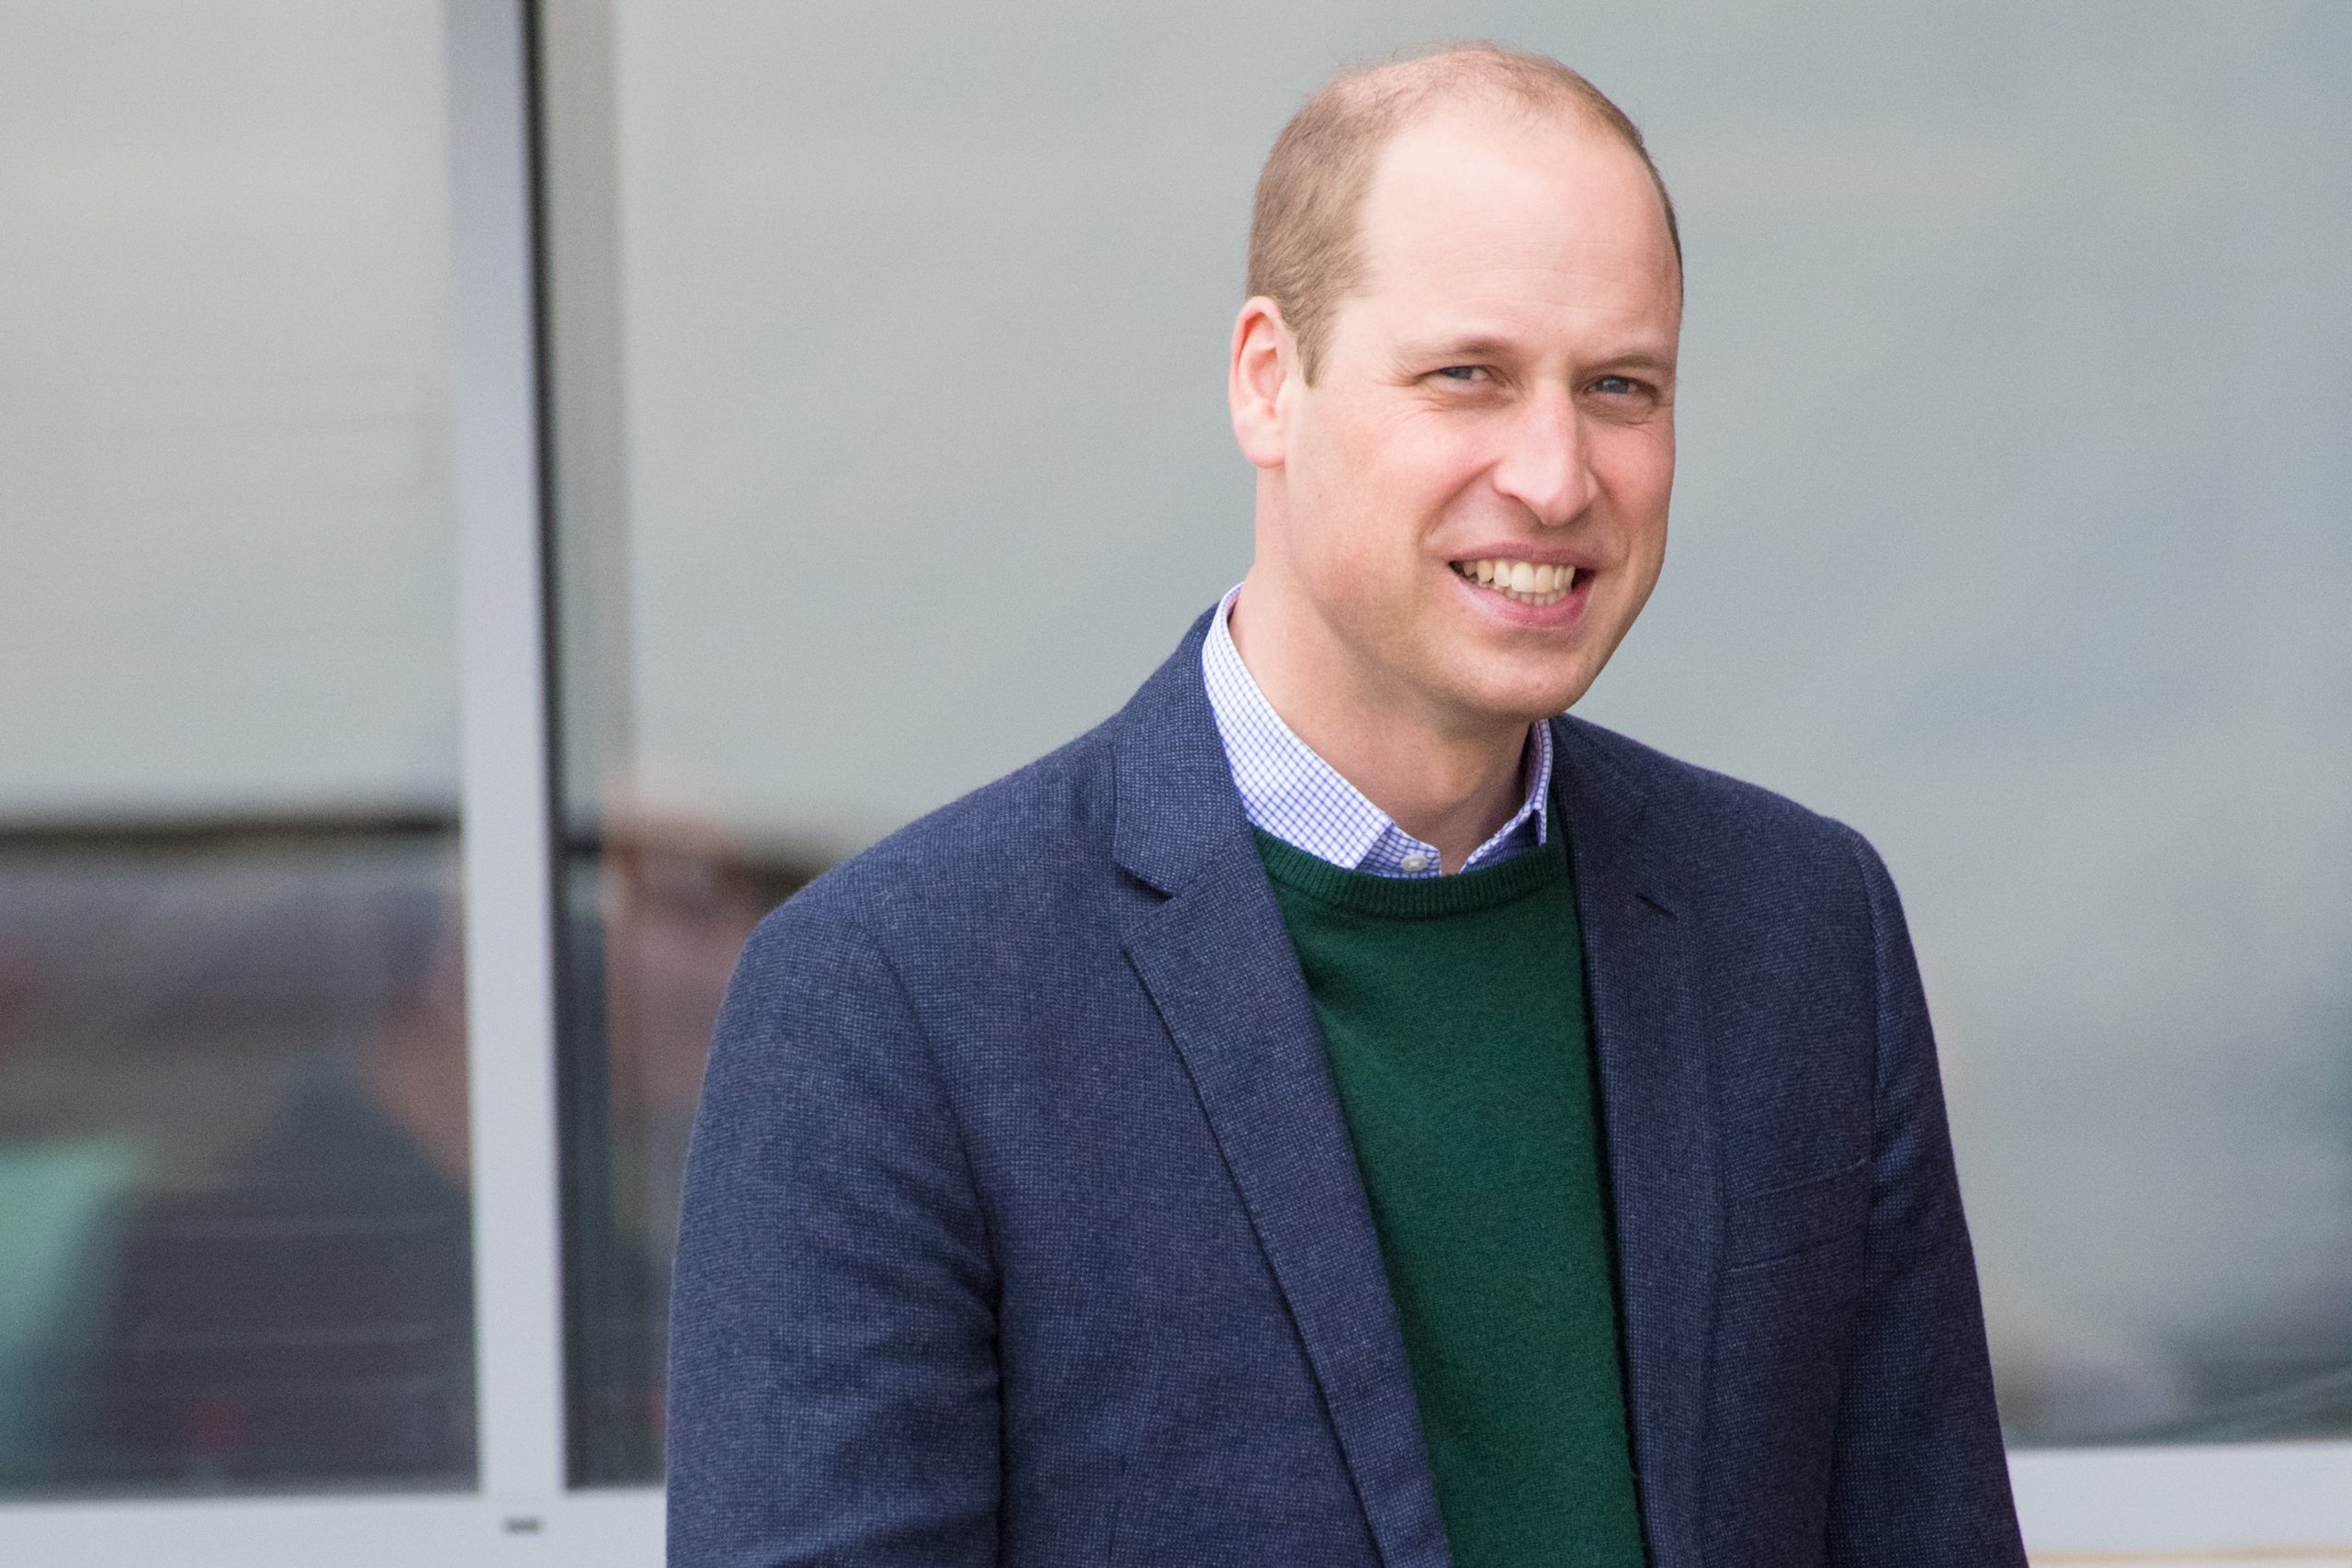 Prince William hopes to impress son George with latest royal engagement